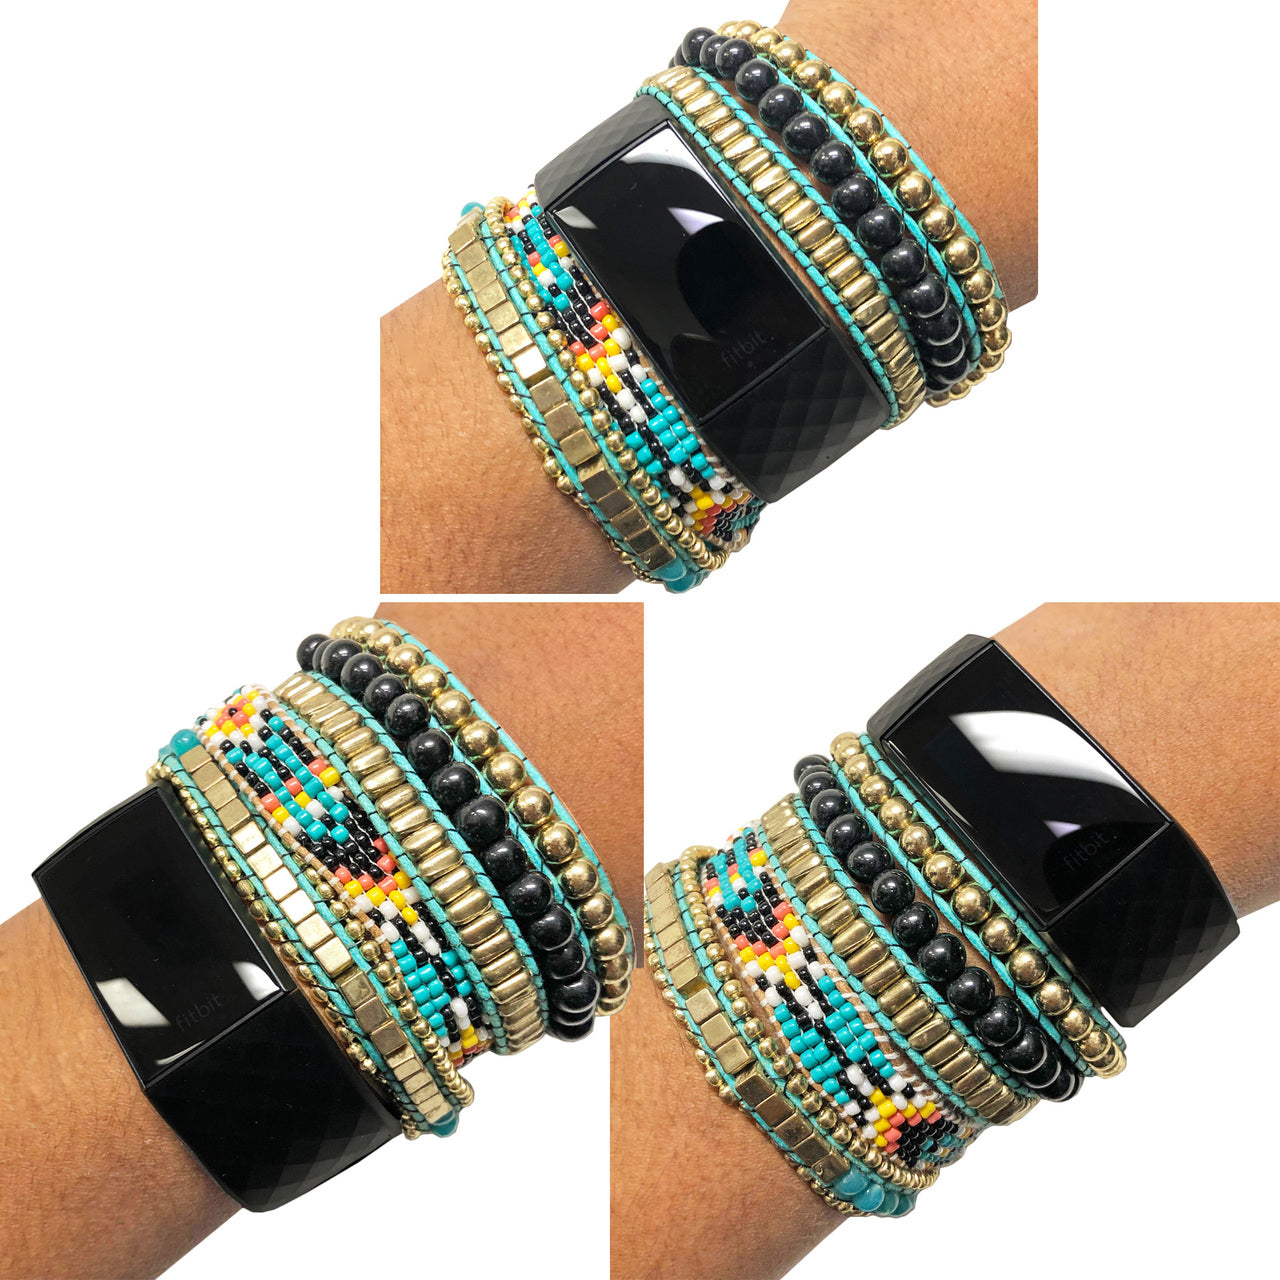 Fitbit Bracelet to Accessorize the Fitbit Charge 3 Band Fitness Tracker ROSIE Beaded Layered Bracelet to Dress Up Your Activity Tracker